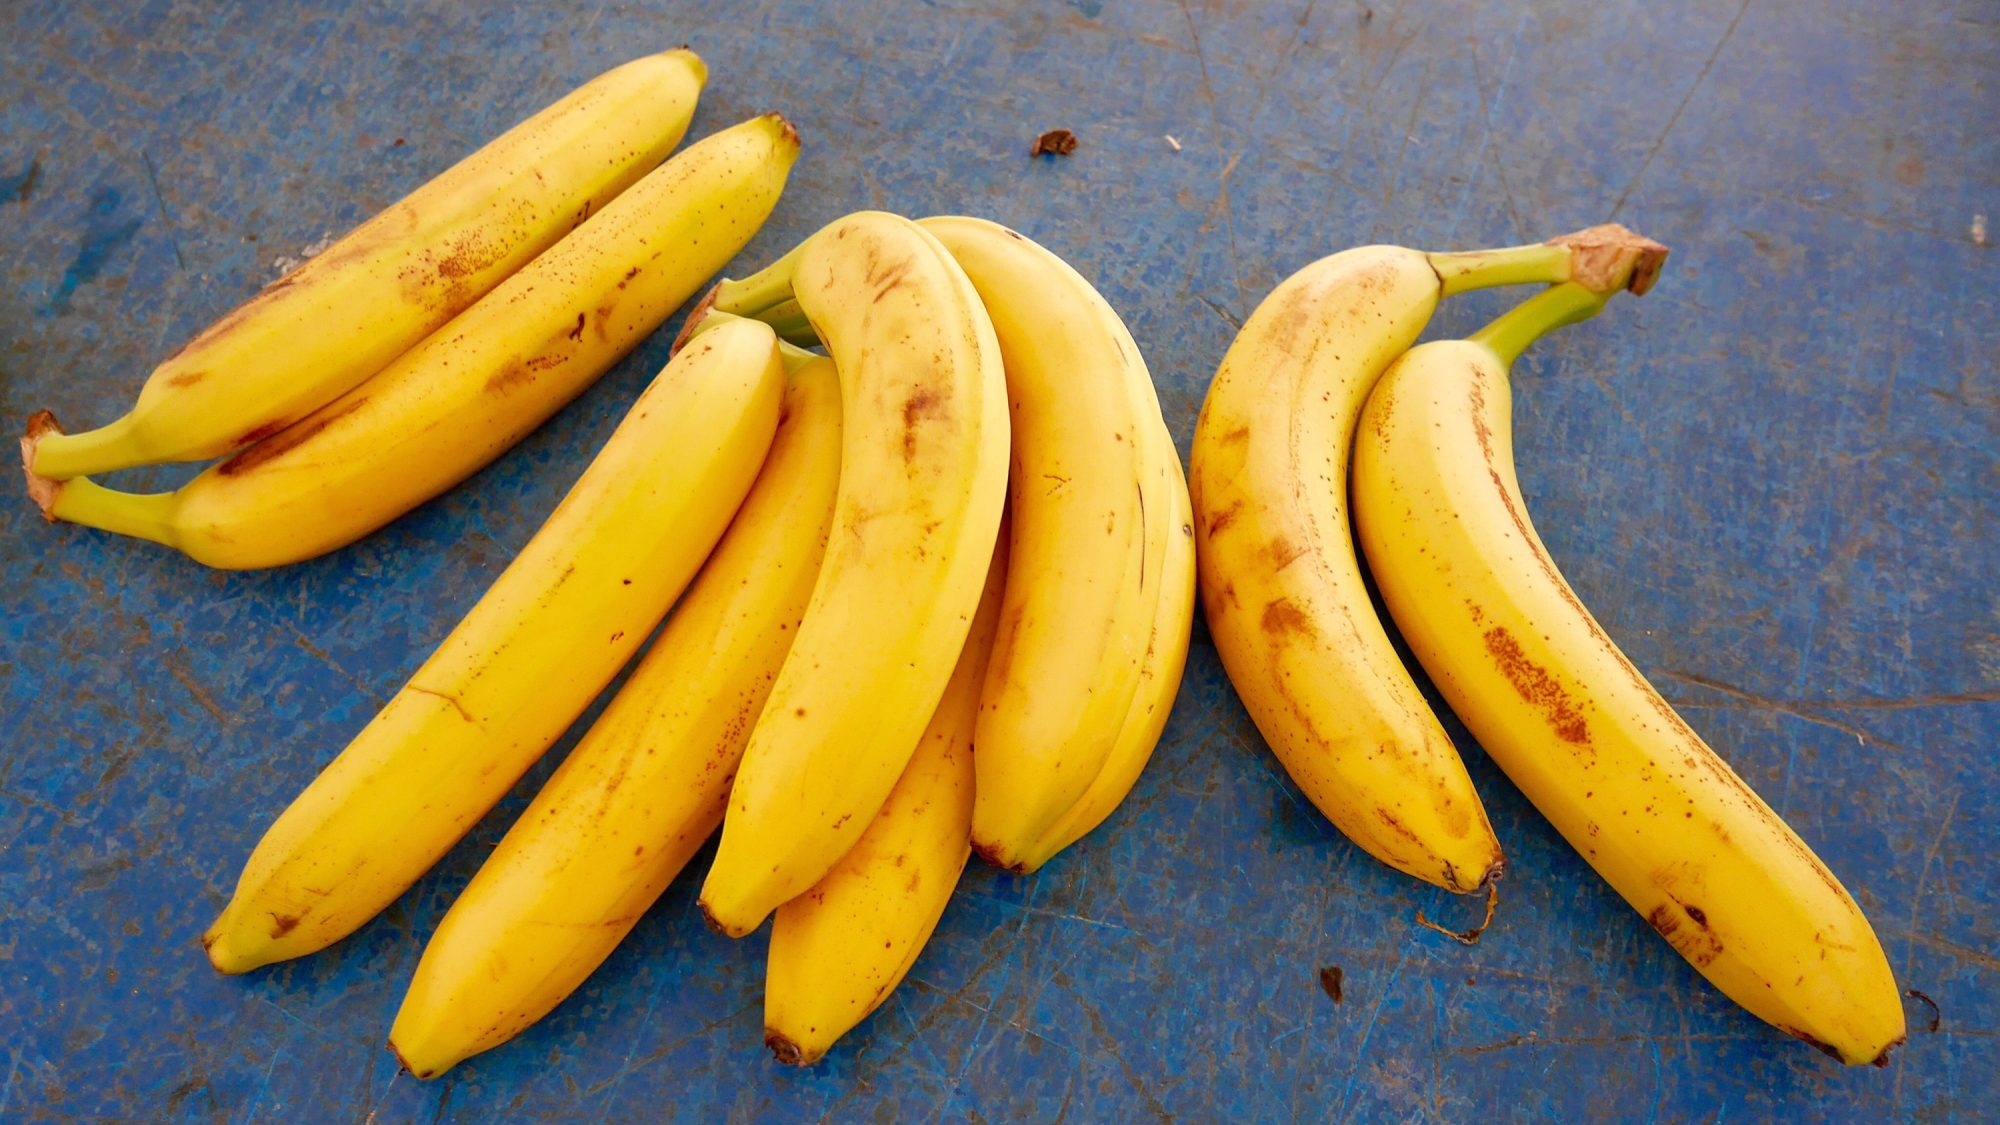 Bananas as We Know Them Could Disappear Forever